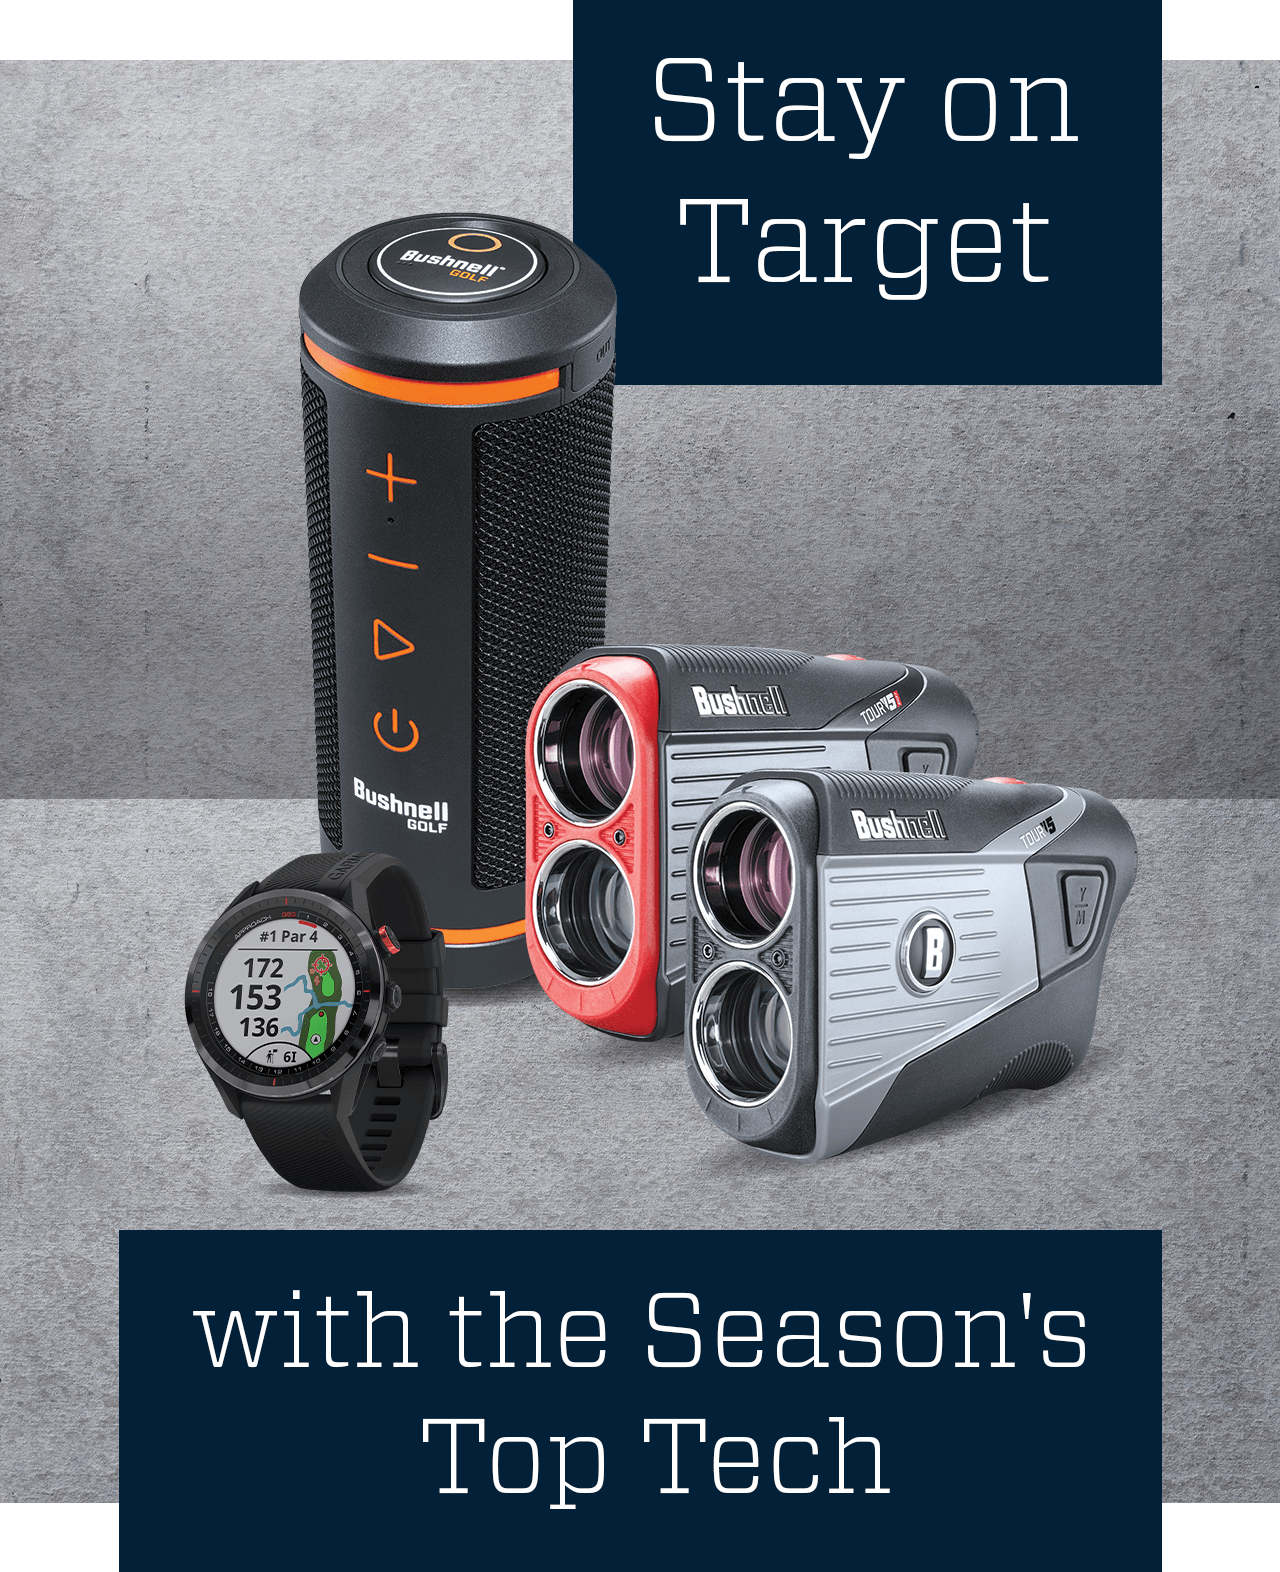 Stay on target with the season's top tech.